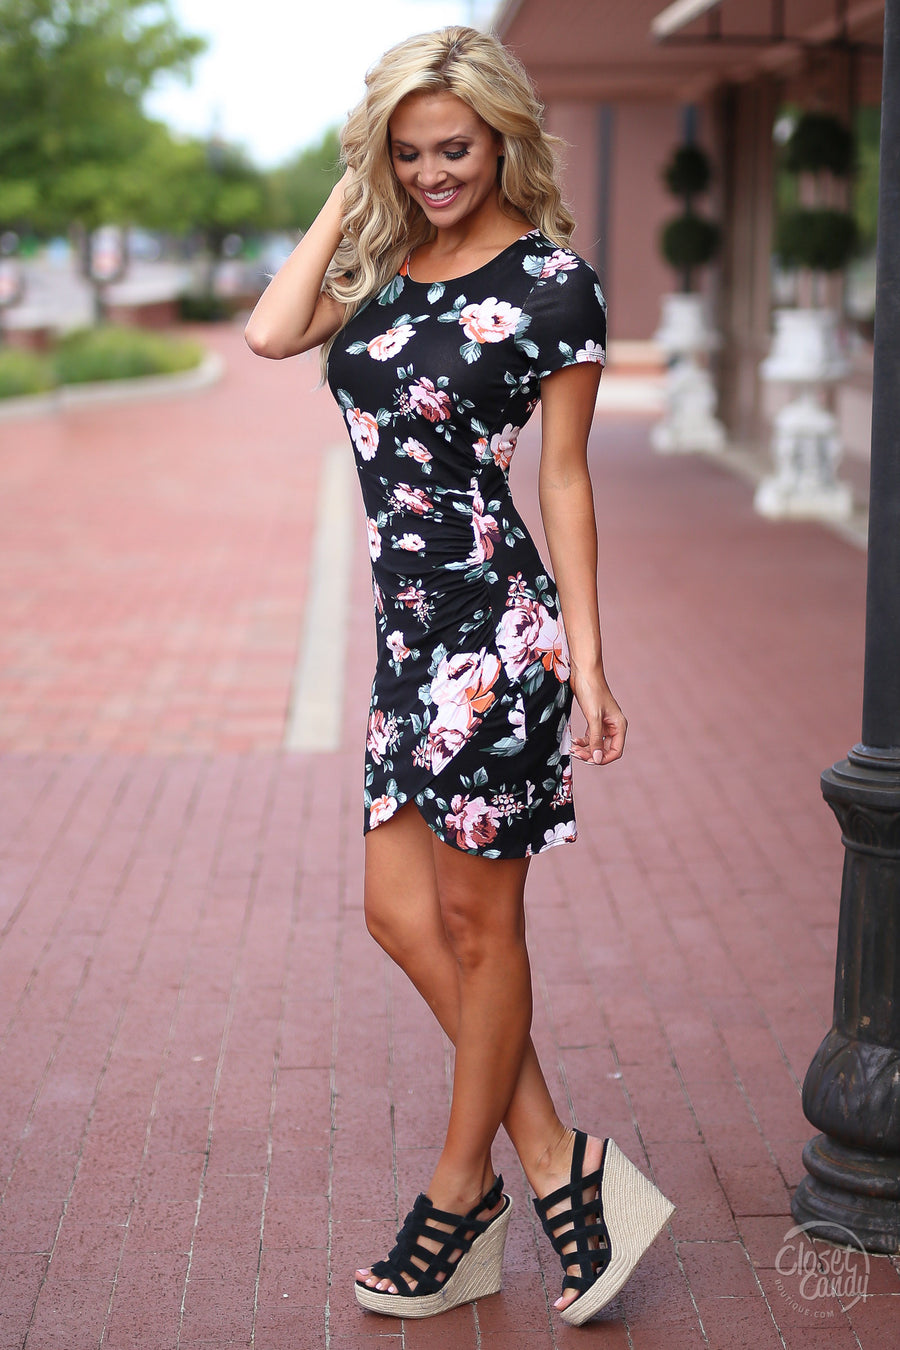 Closet Candy Boutique - cute flattering black floral dress for spring and summer, fitted dress